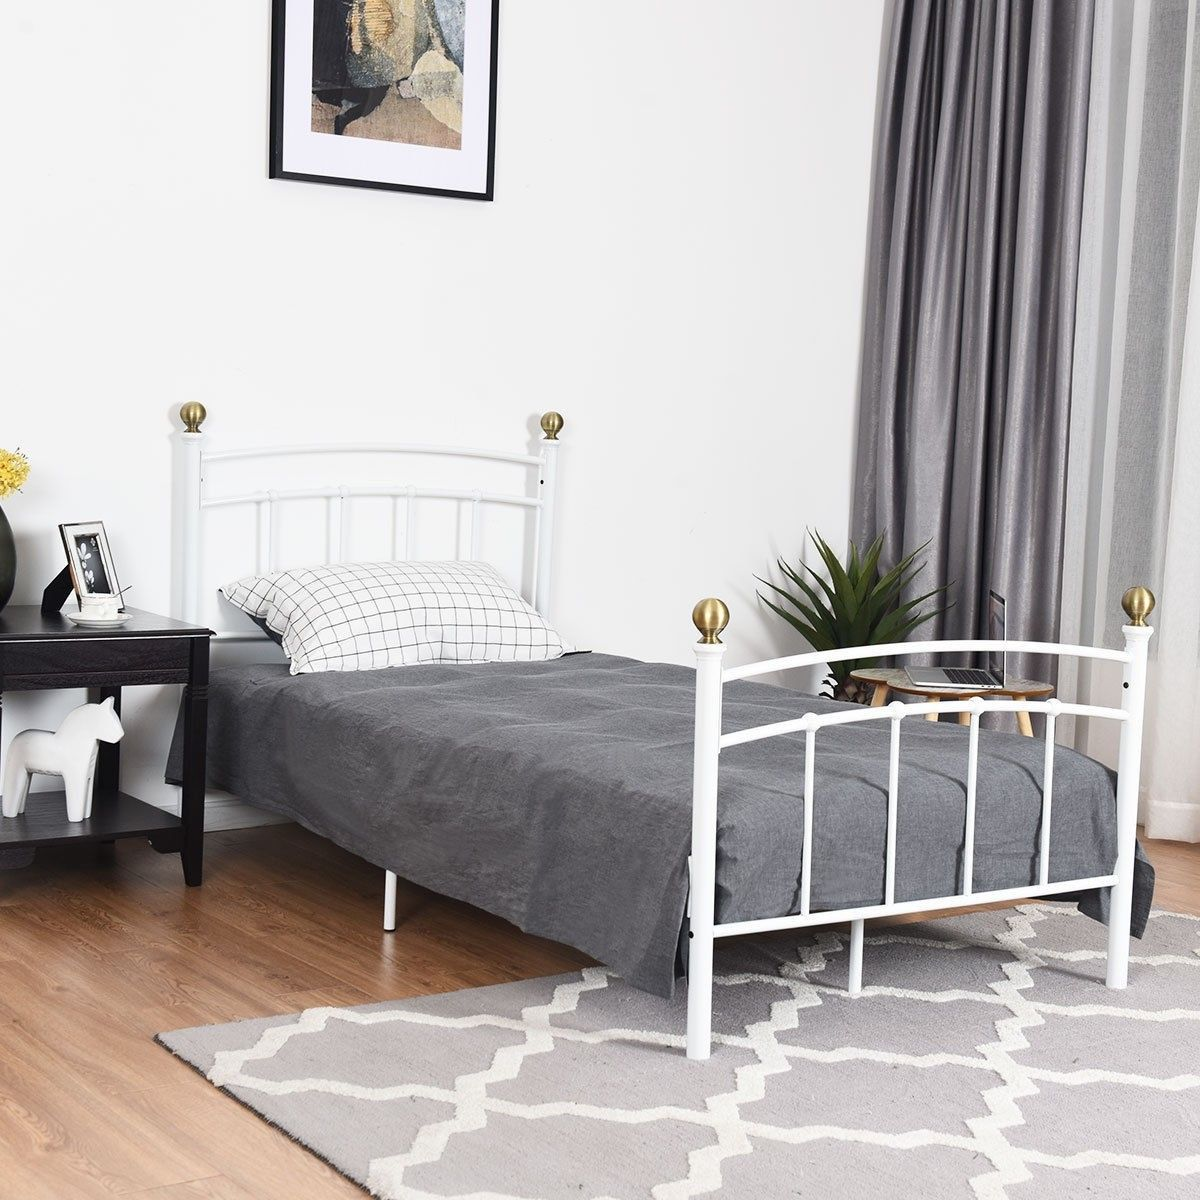 12 Twin Size Metal Bed Frame With Metal Slat Support Bed Frame